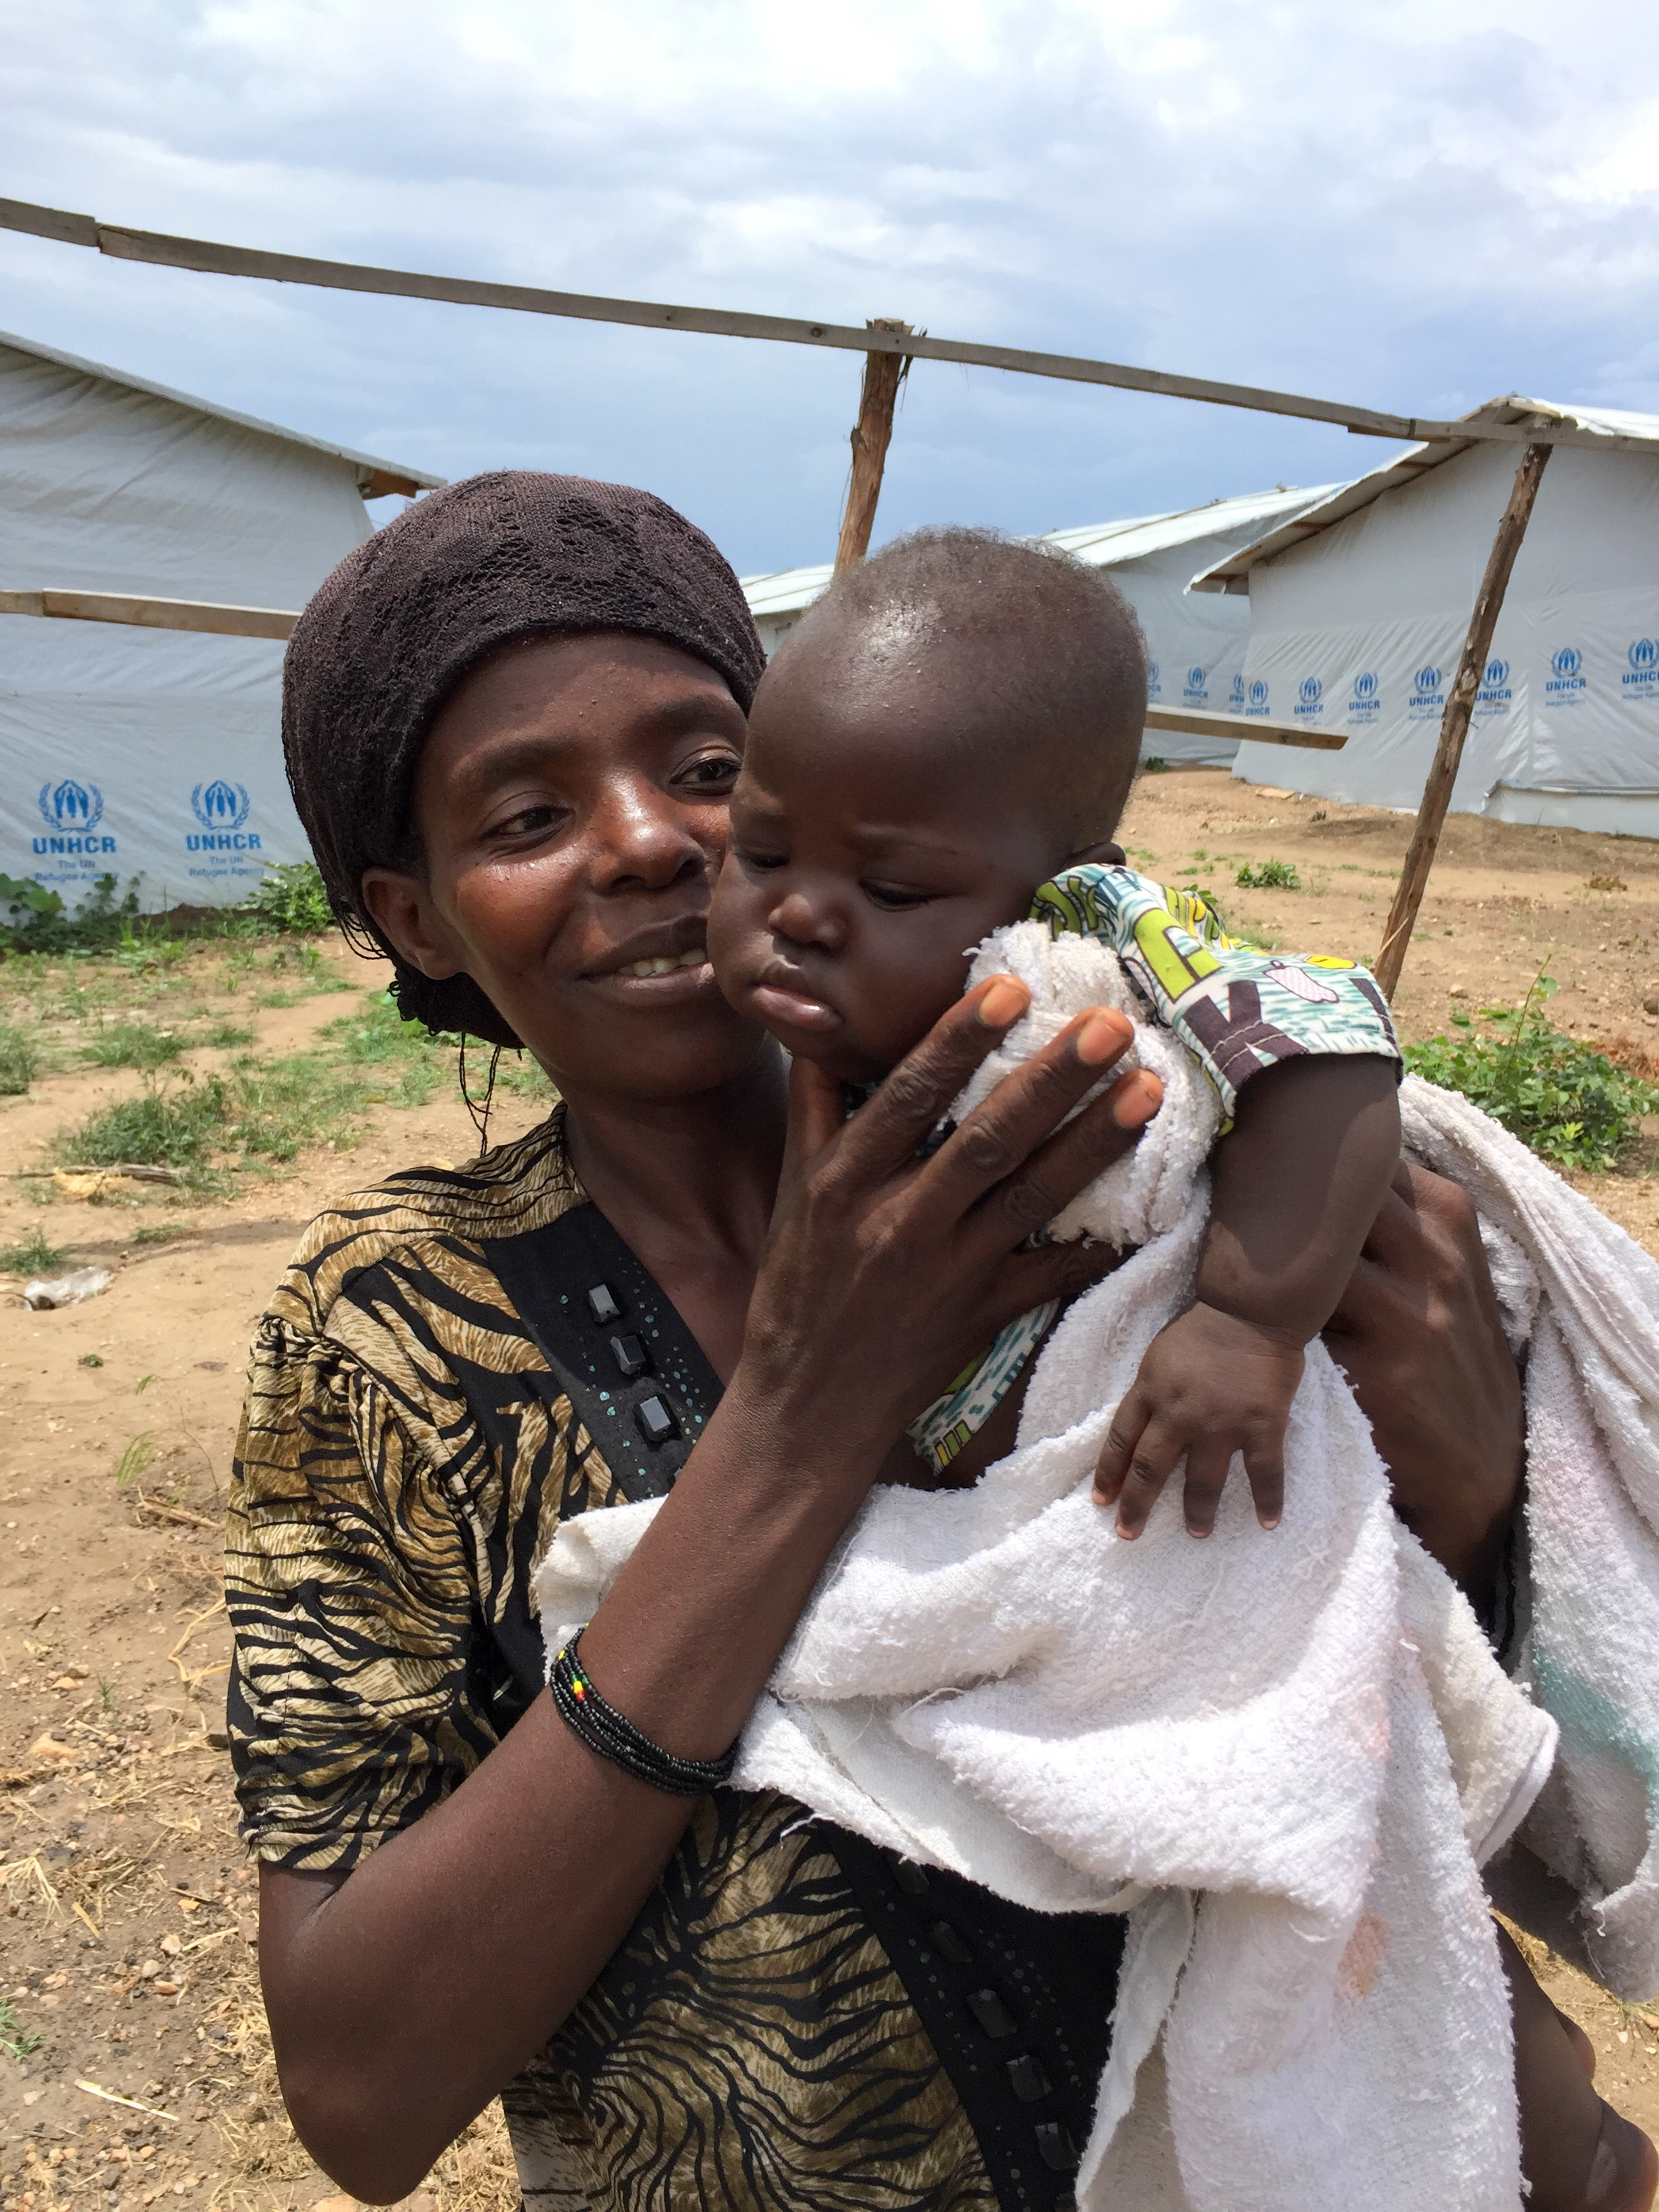 """But in Lusenda, """"comprehensive"""" does not mean sufficient. Refugees receive less than $0.50 a day to spend on food, and patients at the nearby clinic say they receive little more than painkillers."""